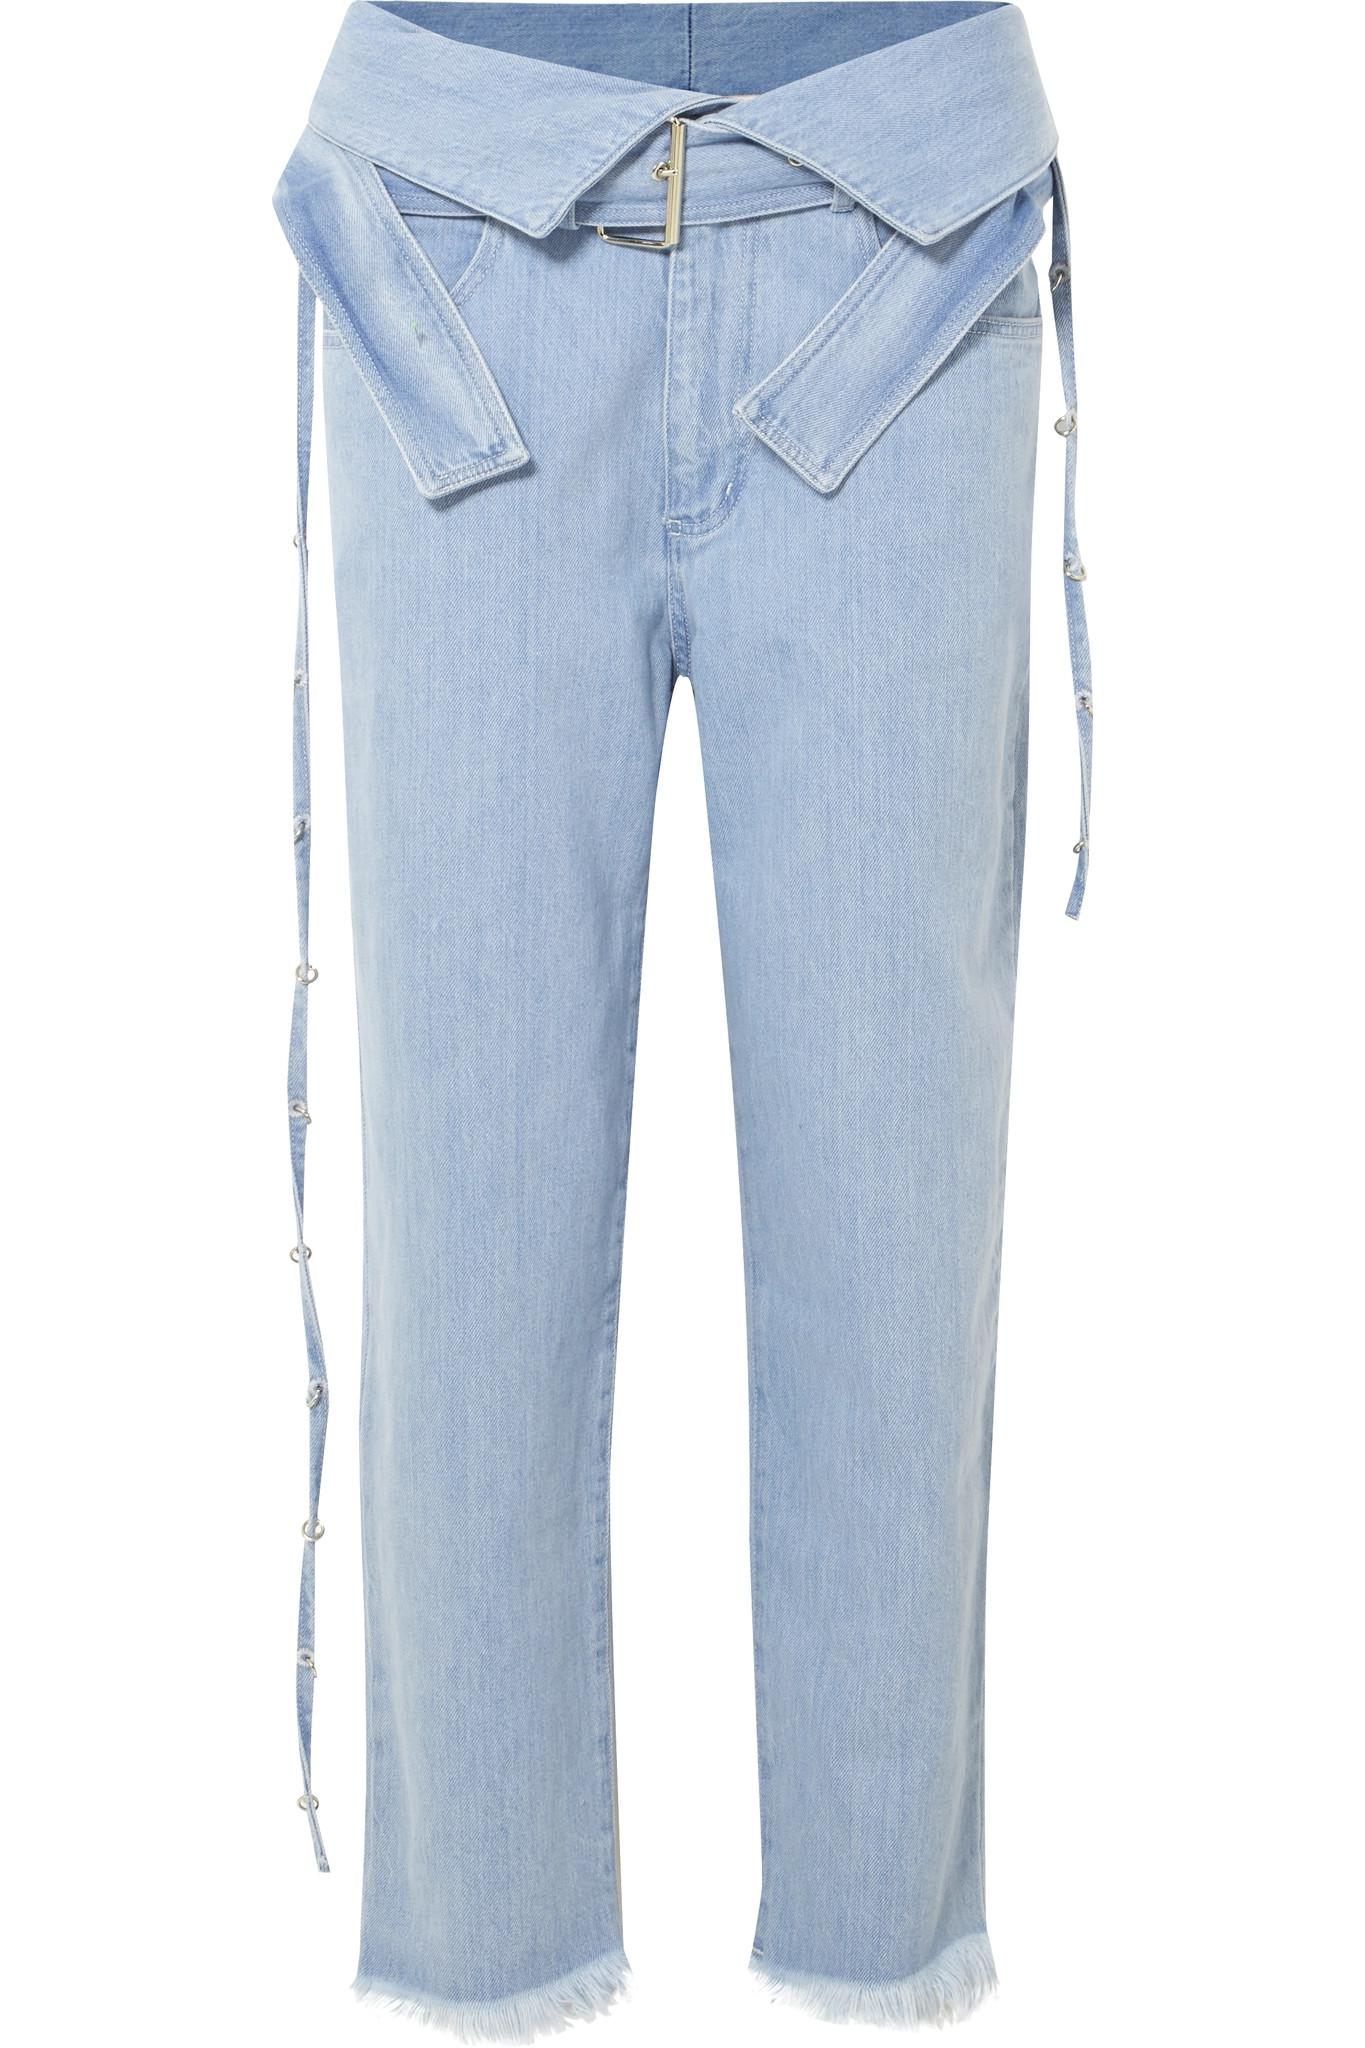 Belted High-rise Jeans - Light denim Marques Almeida Buy Cheap From China TzzJZPLd4R